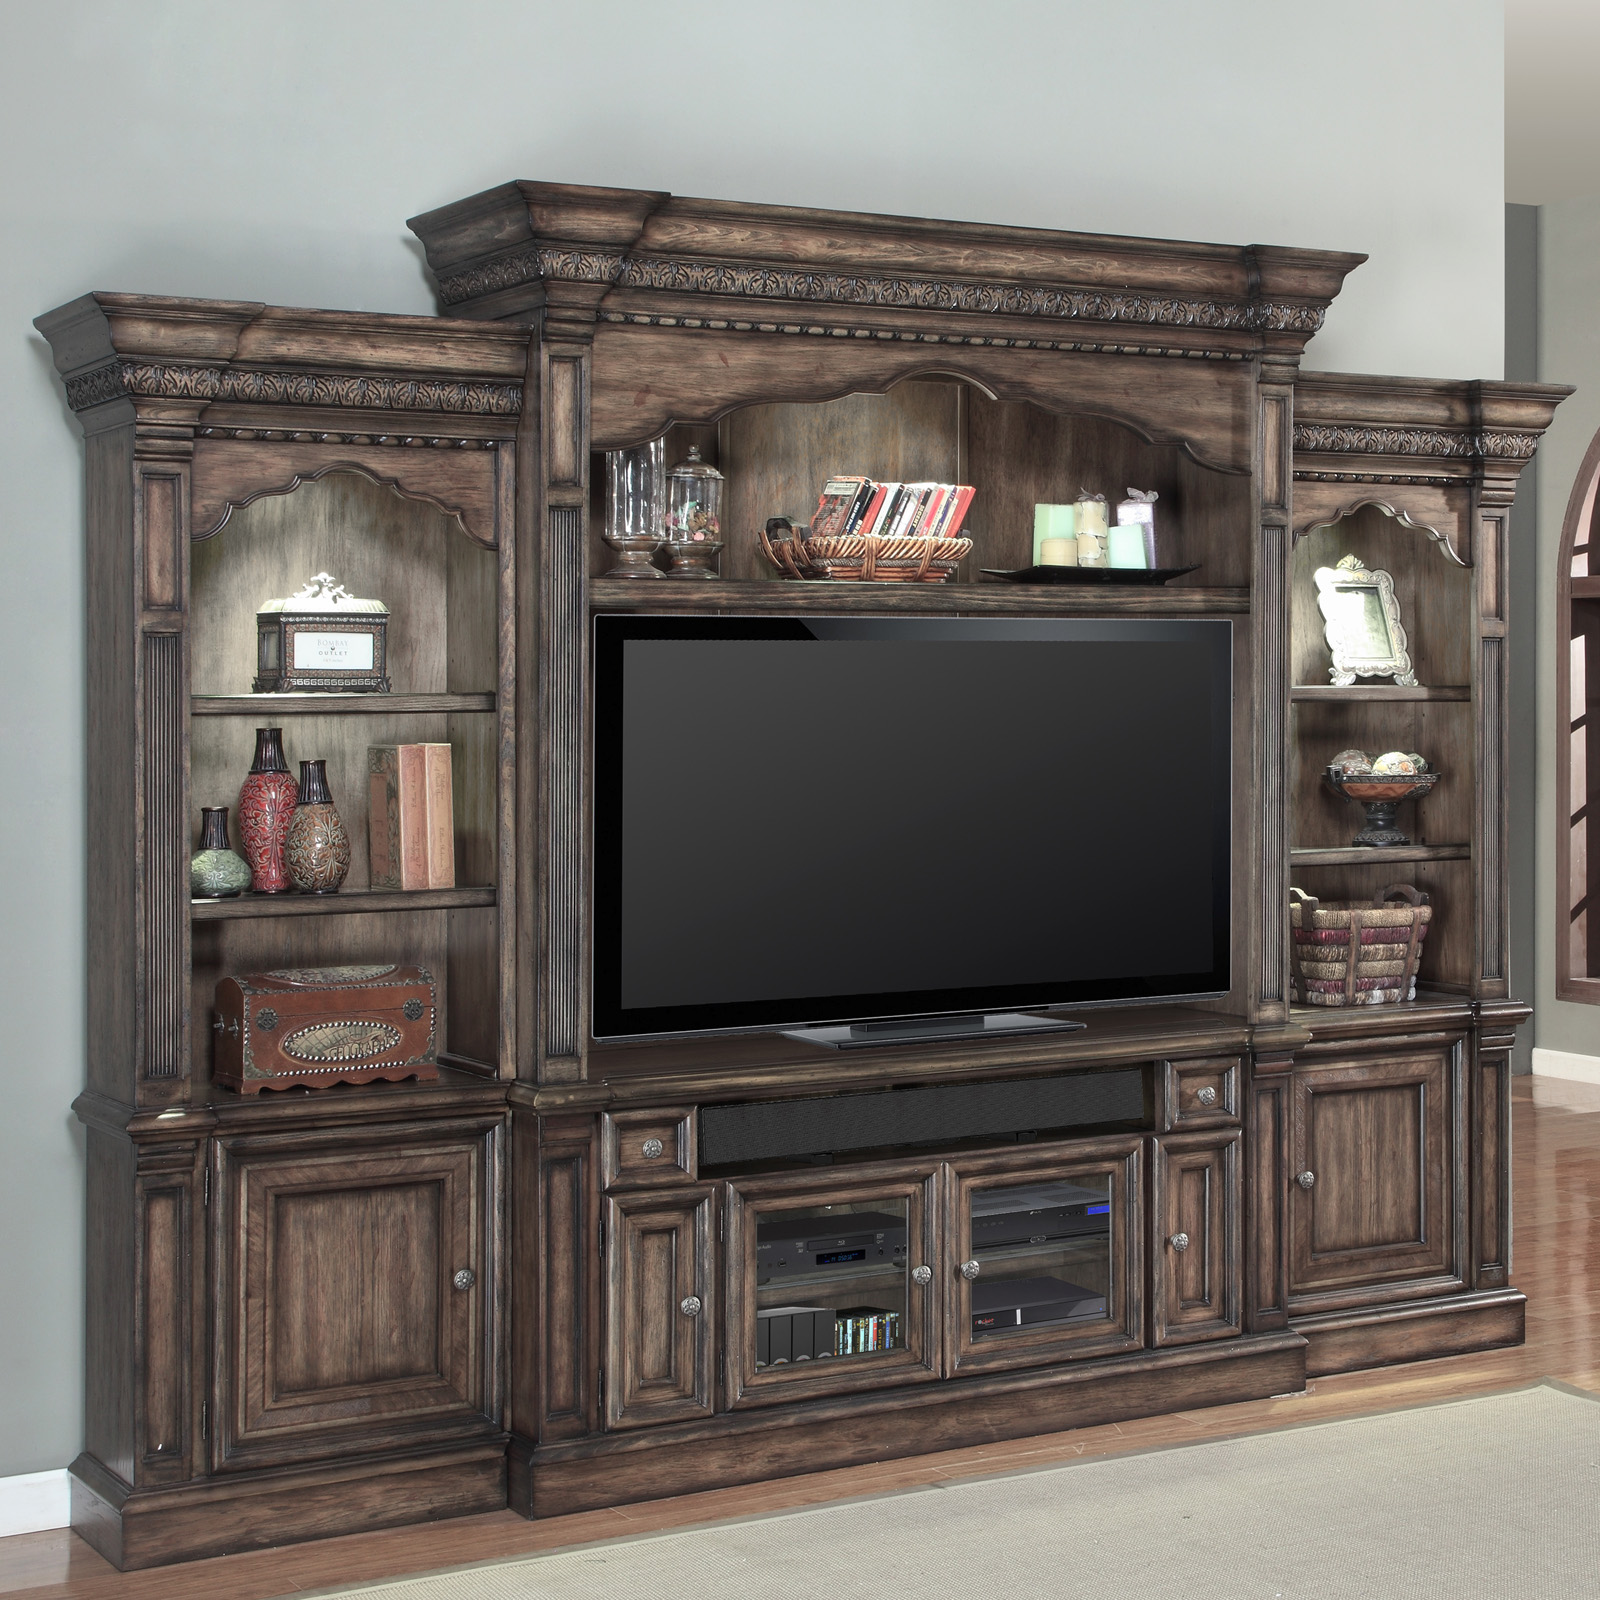 Hammary Dorset Entertainment Center Black with Natural Rub